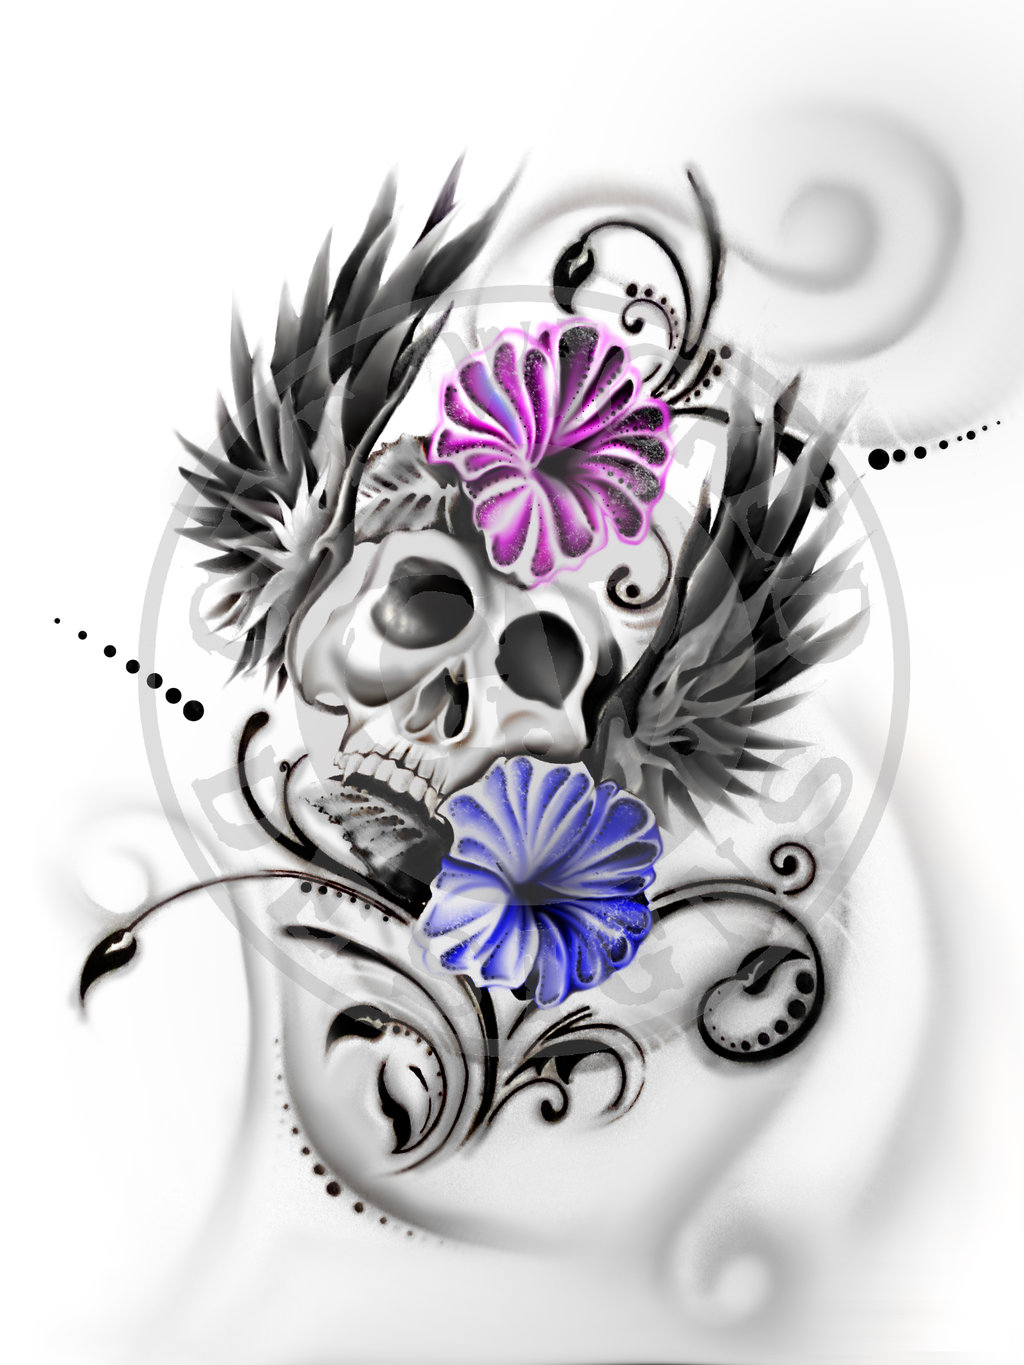 Ssckull clipart wicked Skull  Designs Explore DeviantArt